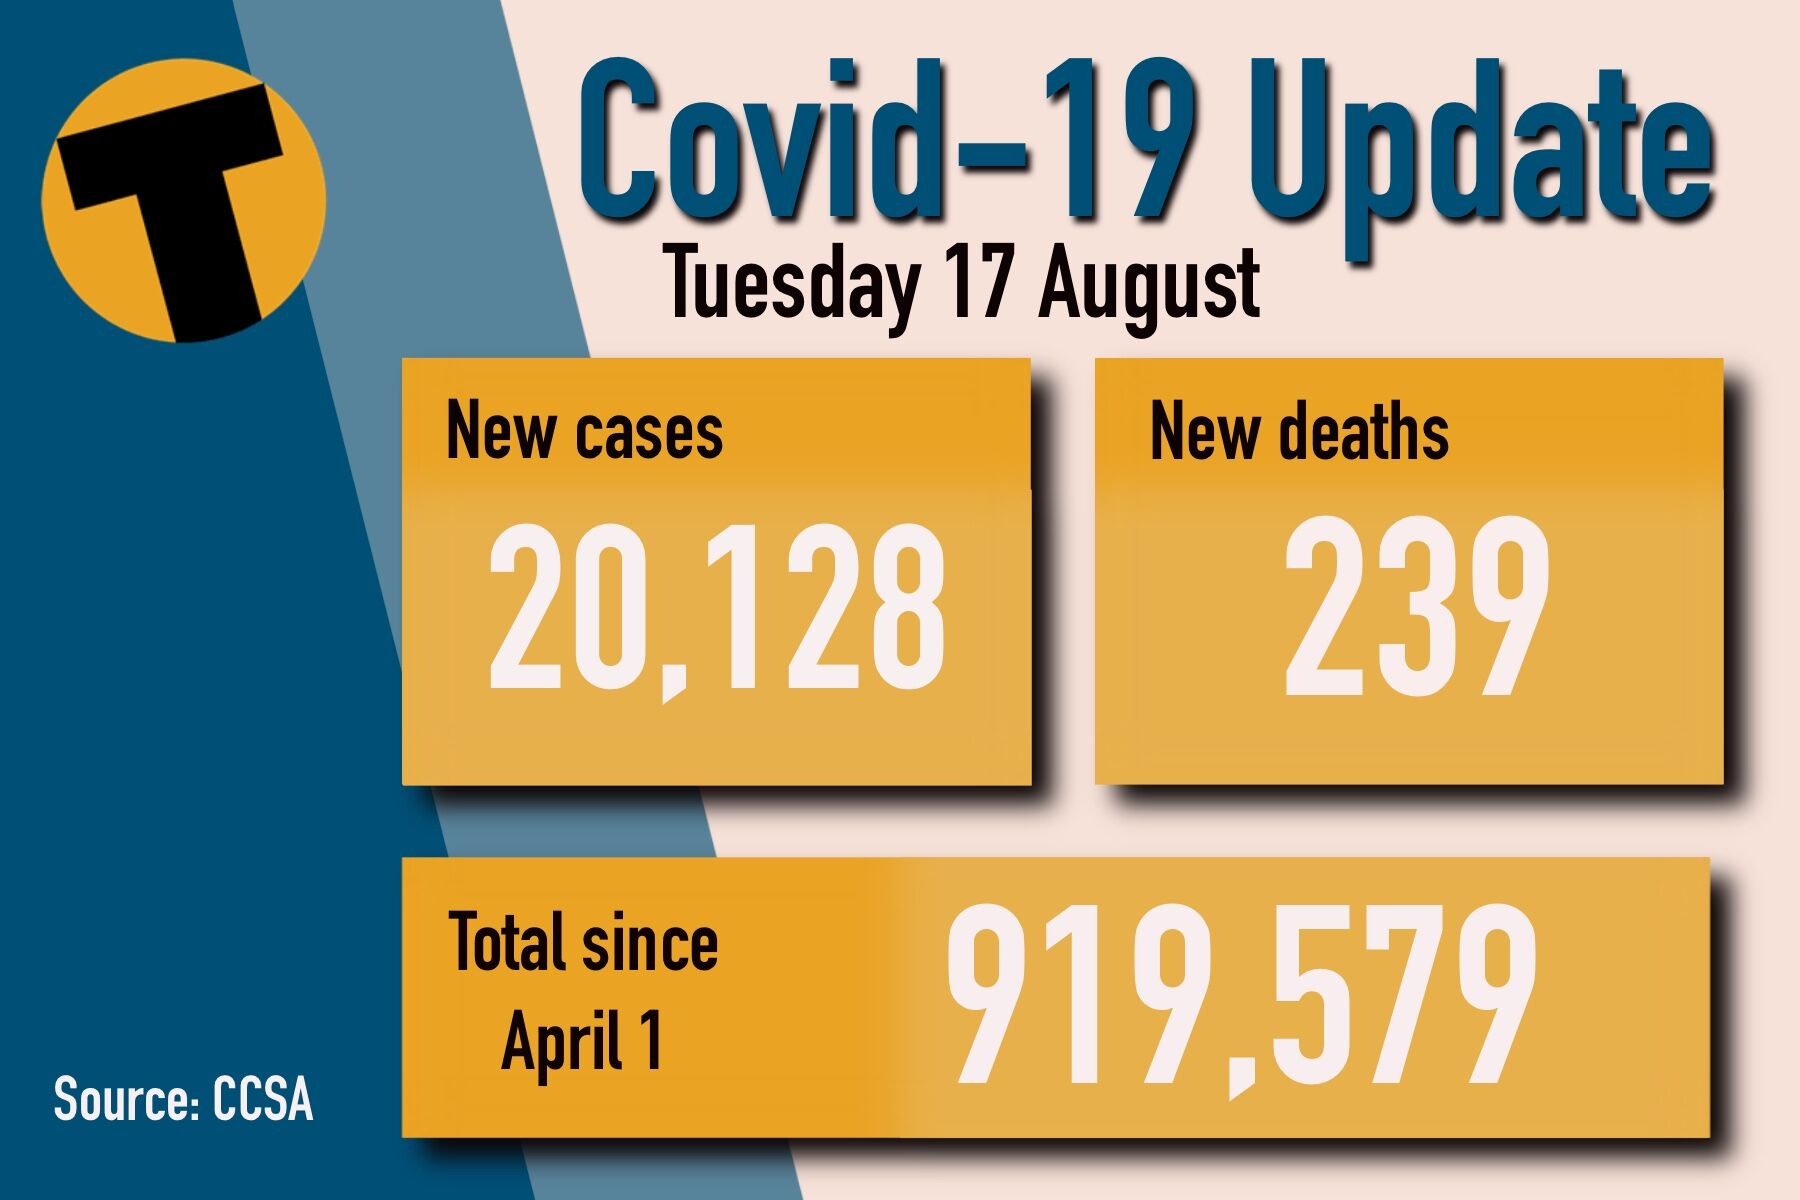 Tuesday Covid Update: 20,128 new cases and 239 deaths | News by Thaiger